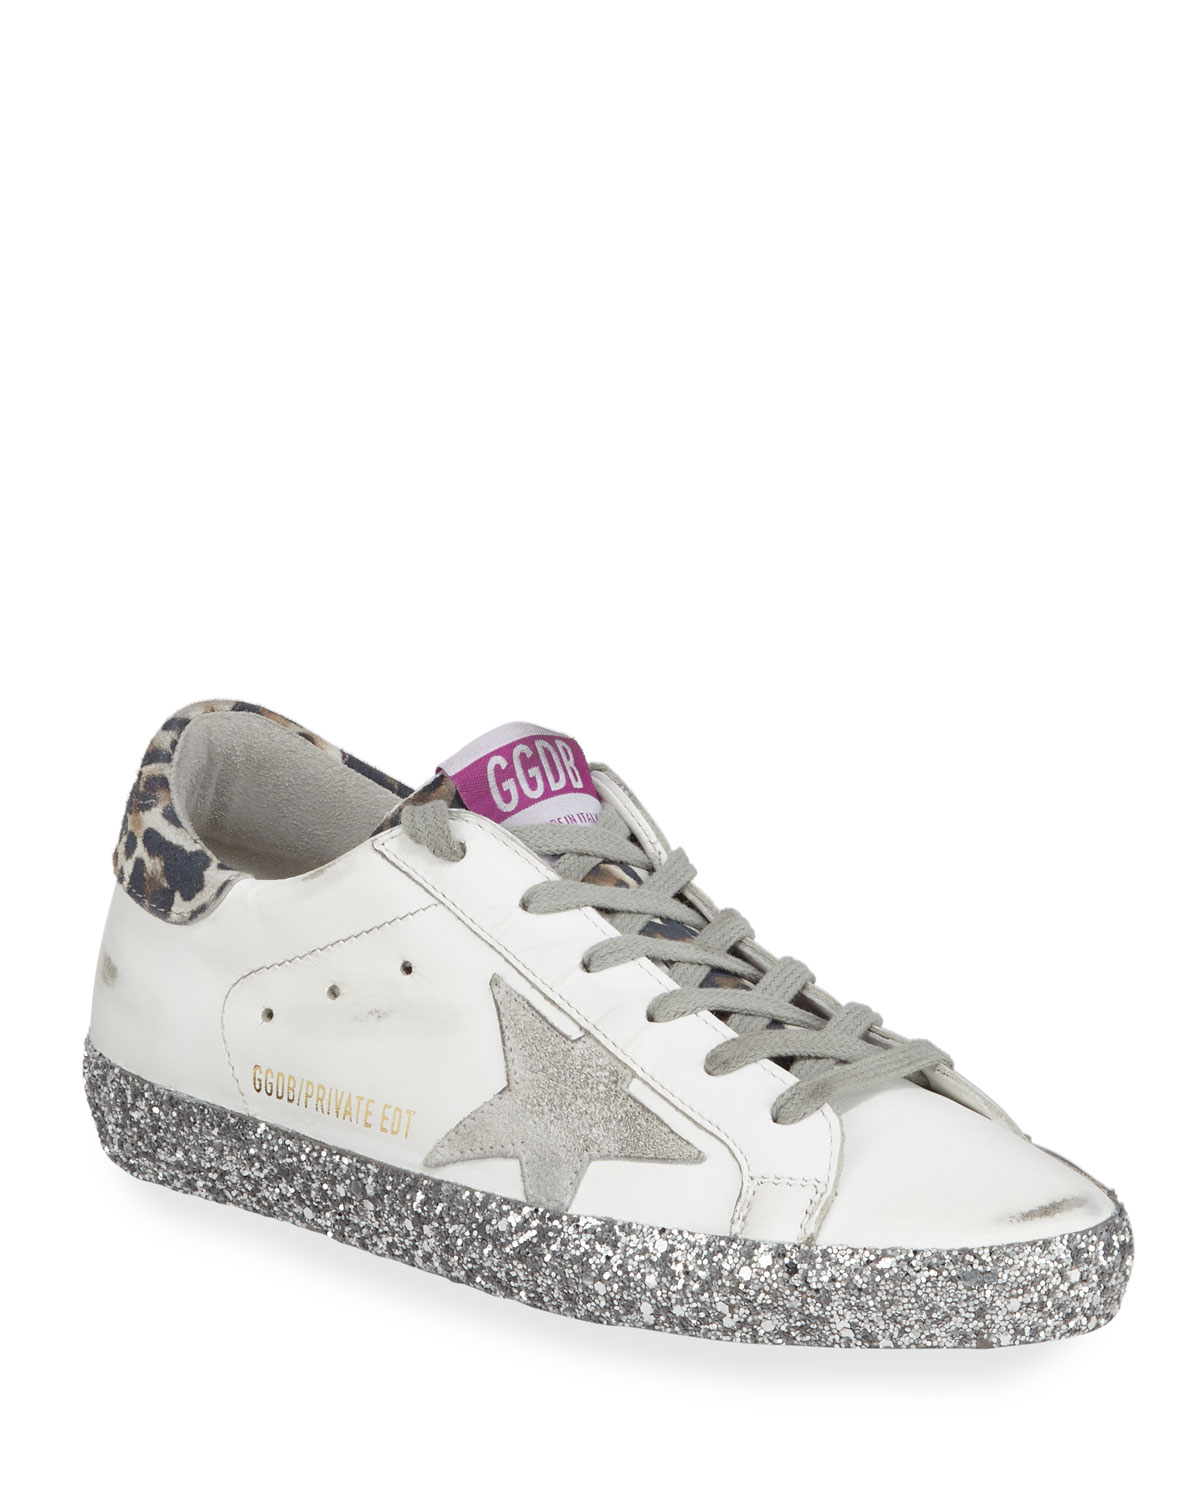 7b877e40d2e83 Golden Goose Superstar Leopard-Print Glittered Leather Sneakers ...